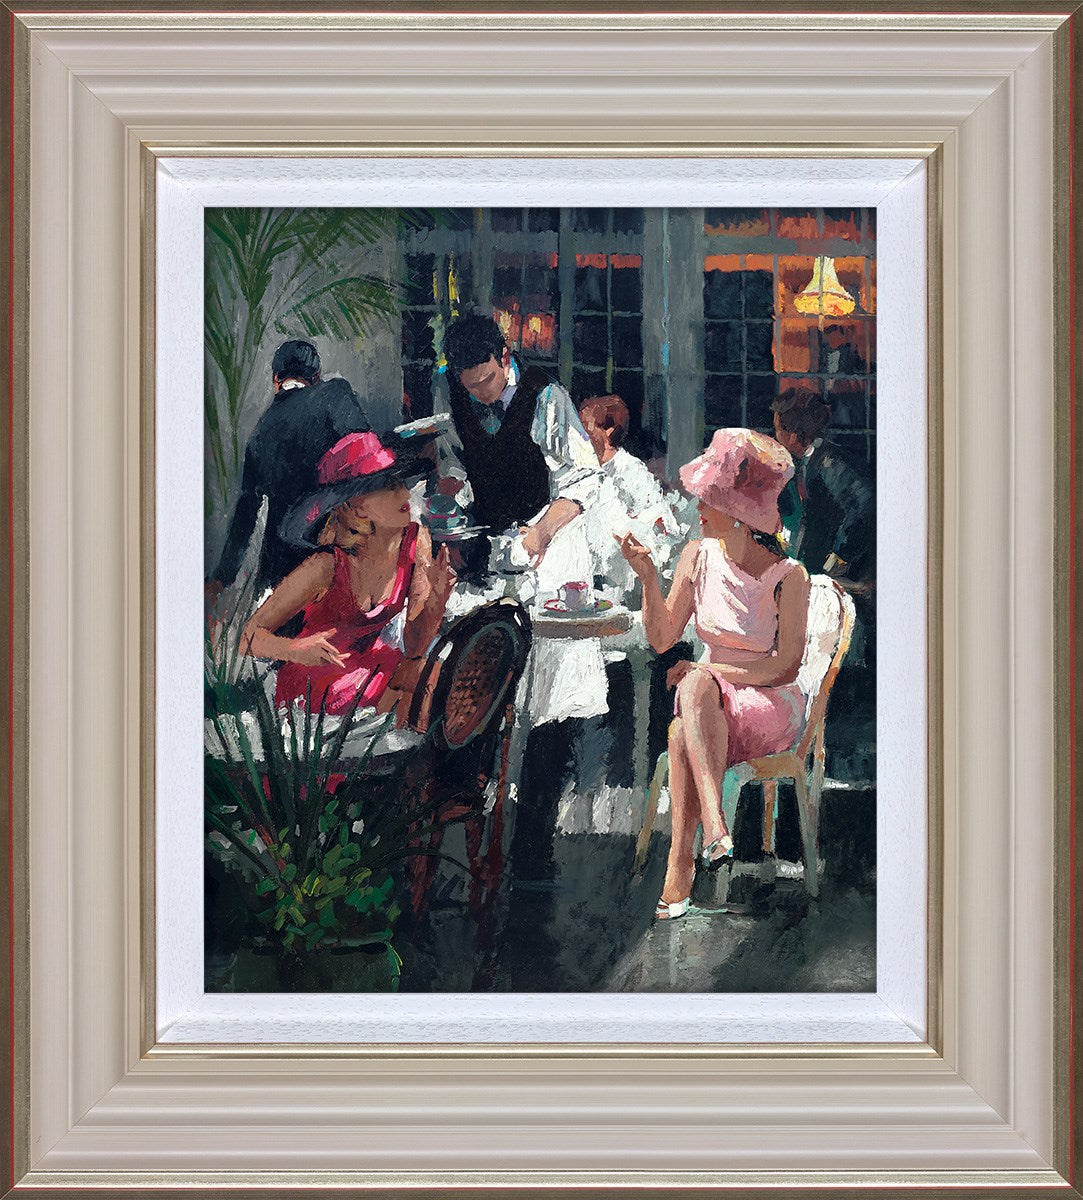 Cafe Royale by Sherree Valentine Daines